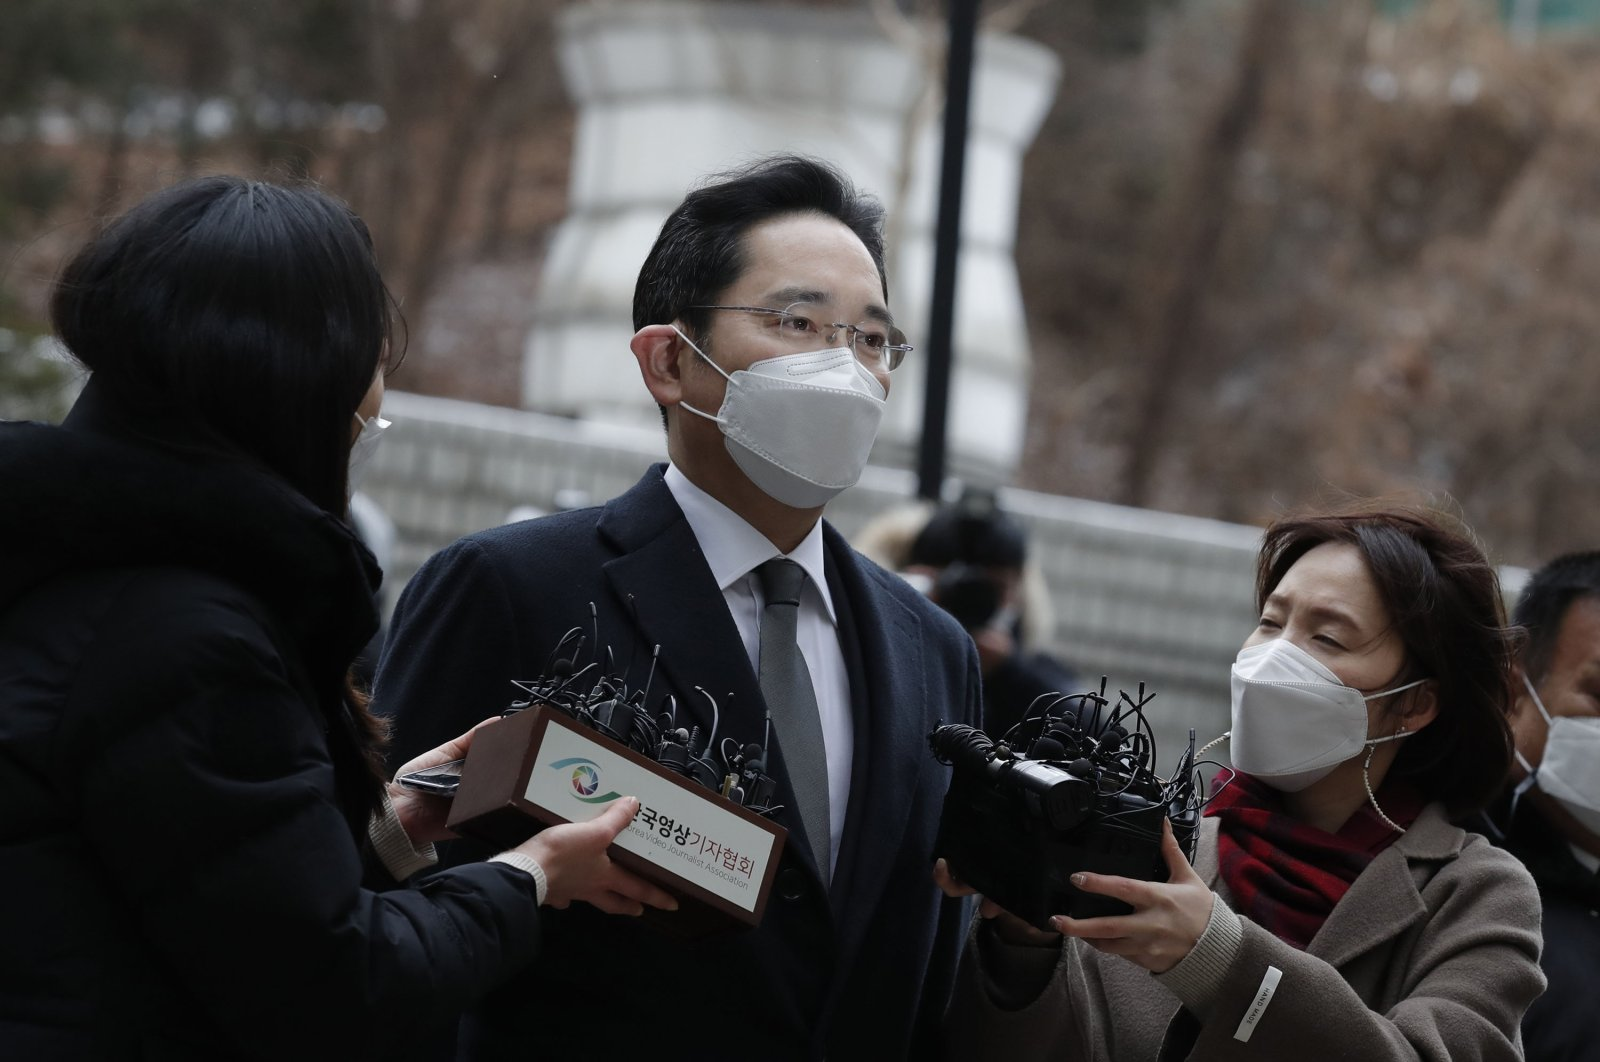 Samsung Electronics Vice Chairman Lee Jae-yong is questioned by reporters upon his arrival at the Seoul High Court in Seoul, South Korea, Jan. 18, 2021. (AP Photo)